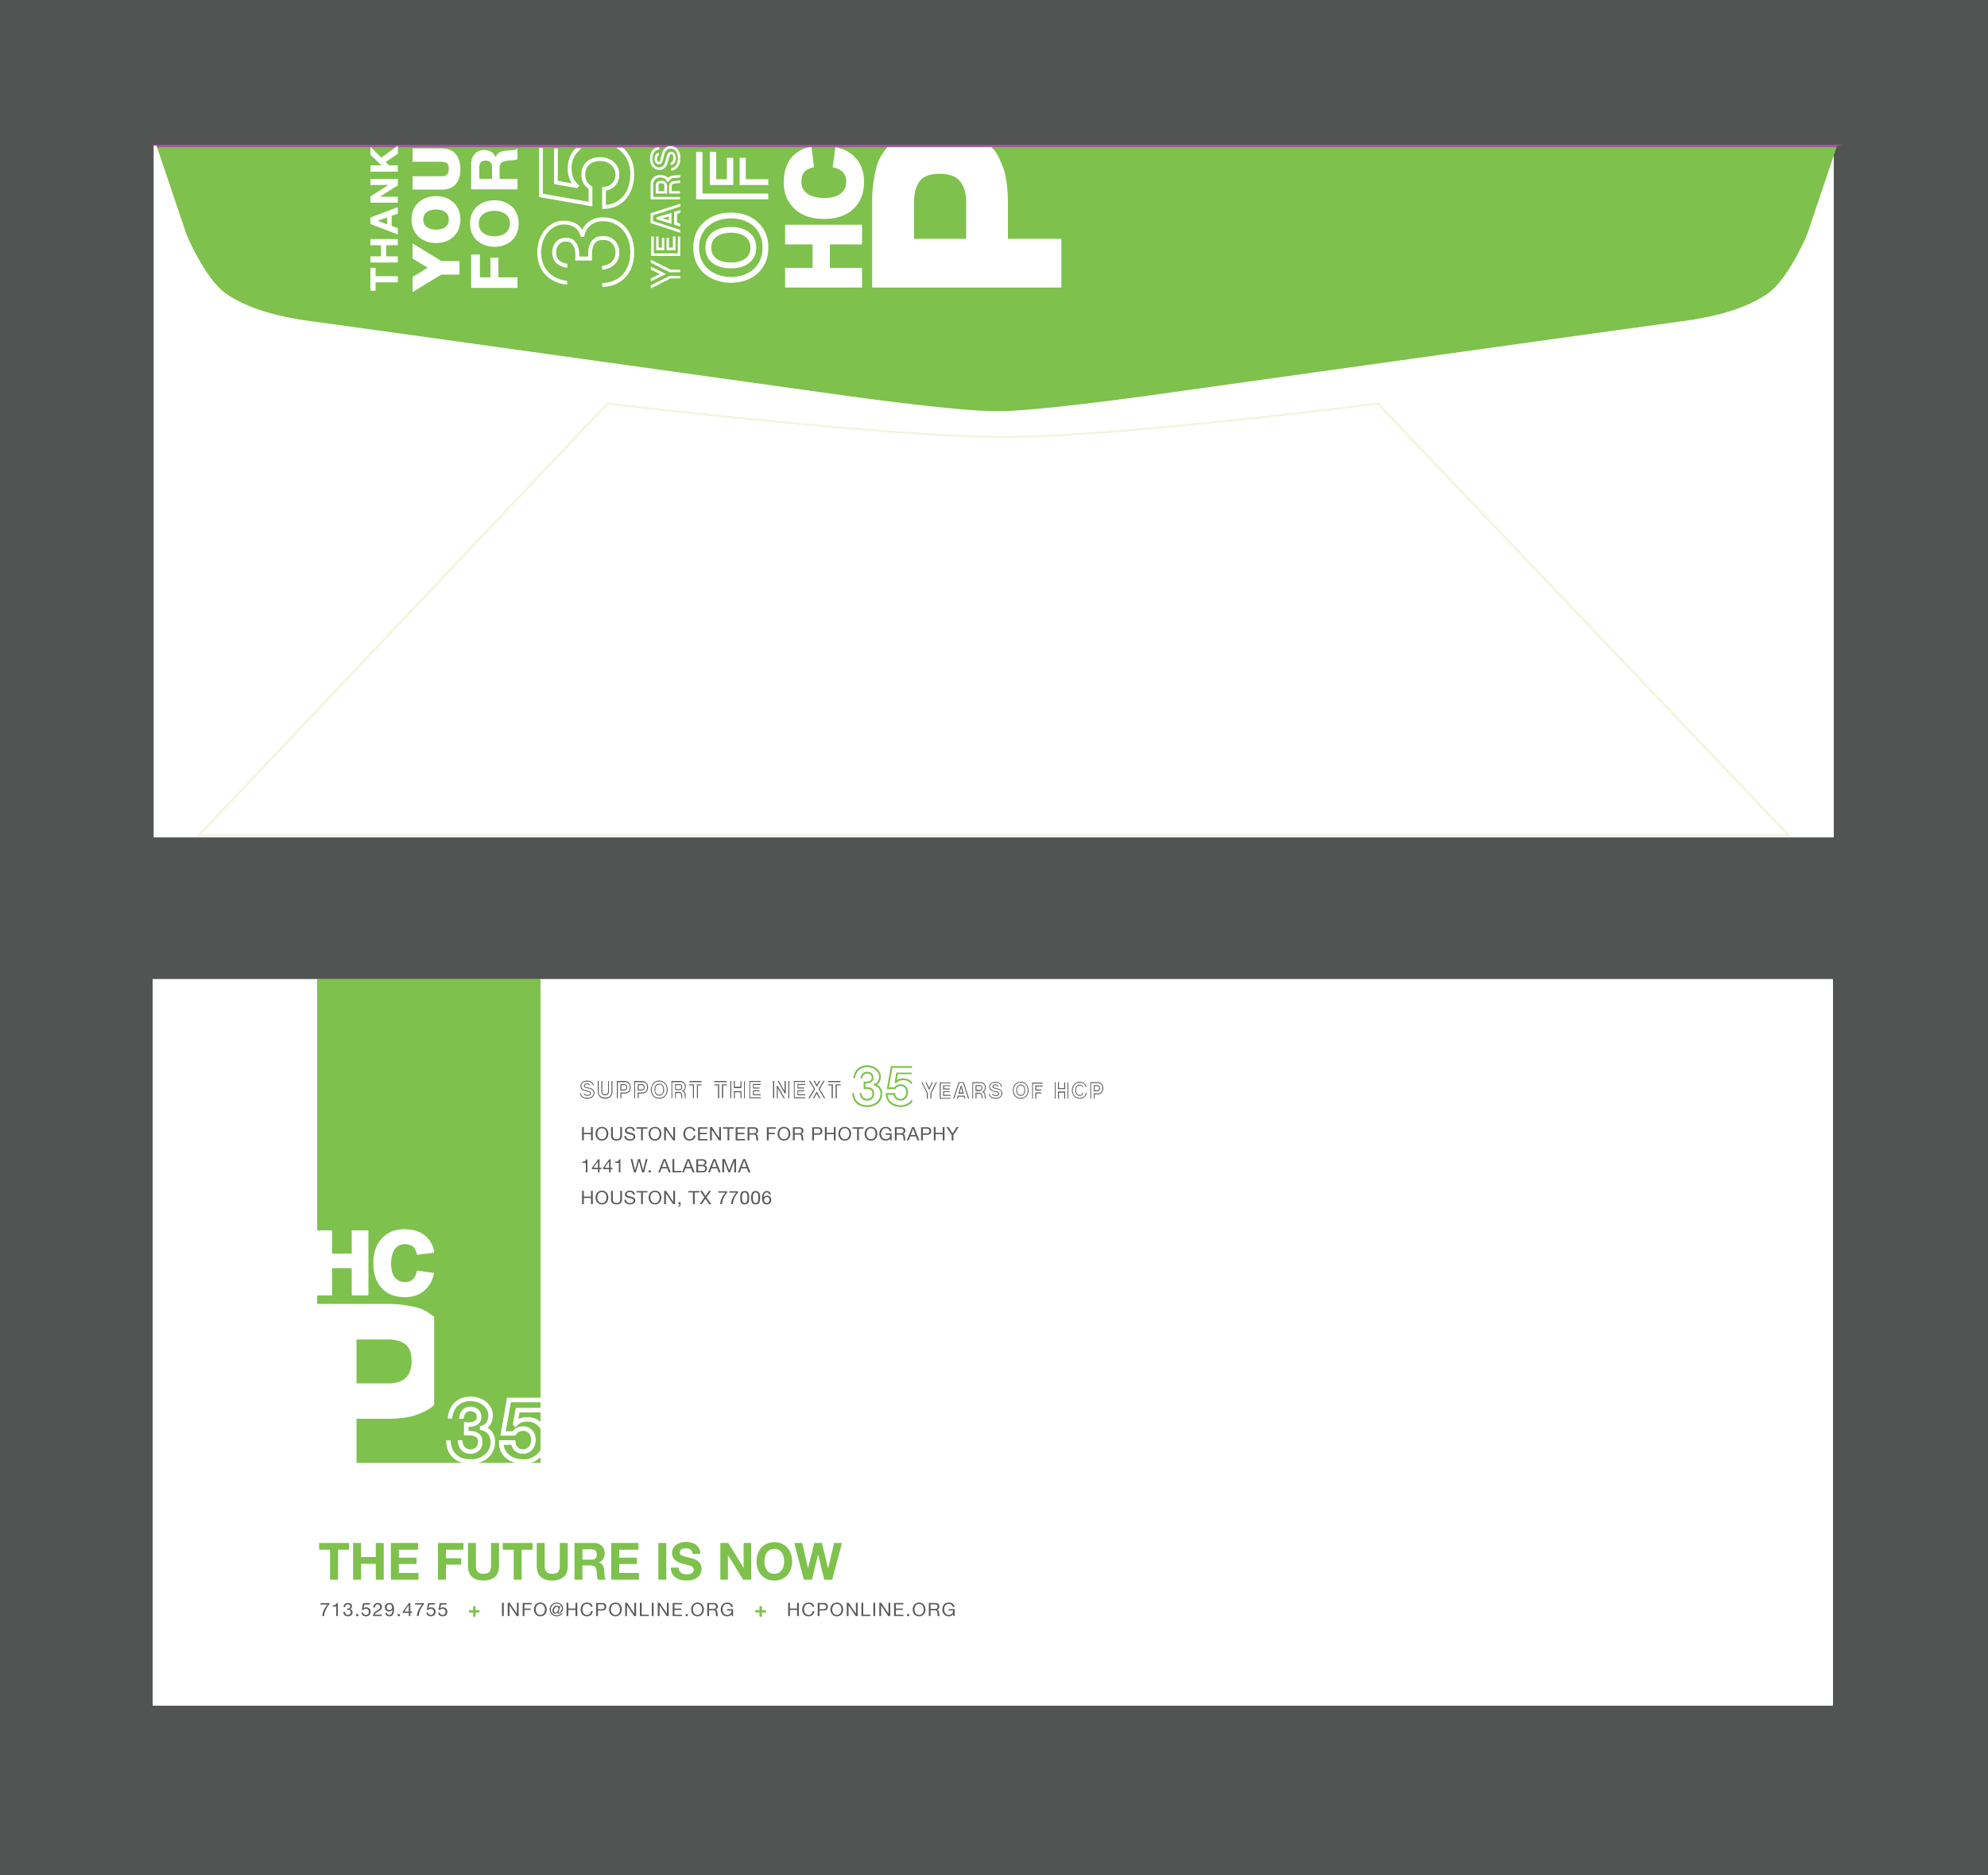 #10 envelope, front and back